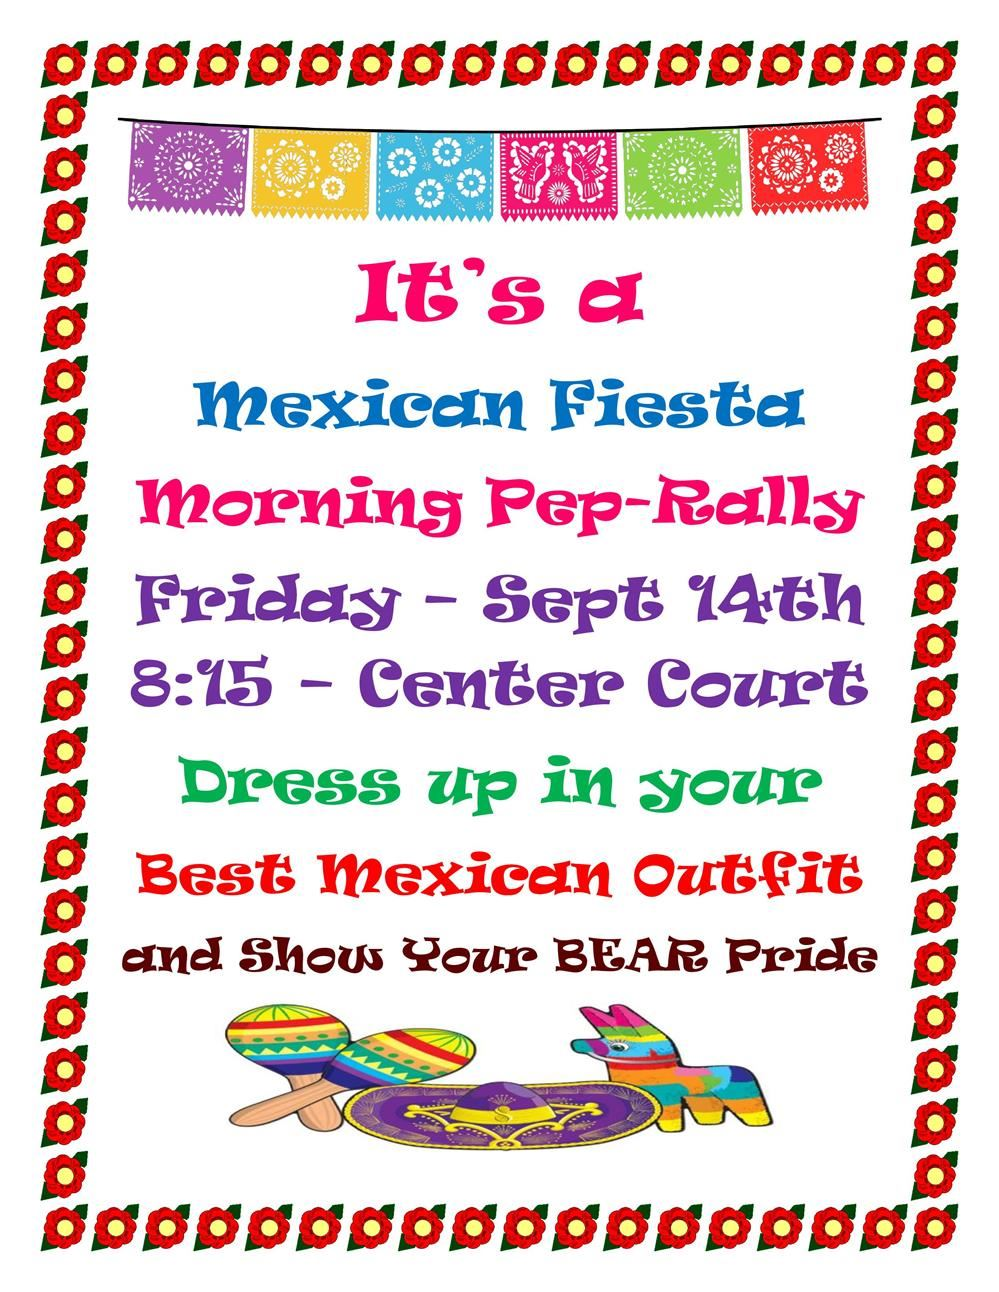 Mexican Fiesta Friday Pep-Rally